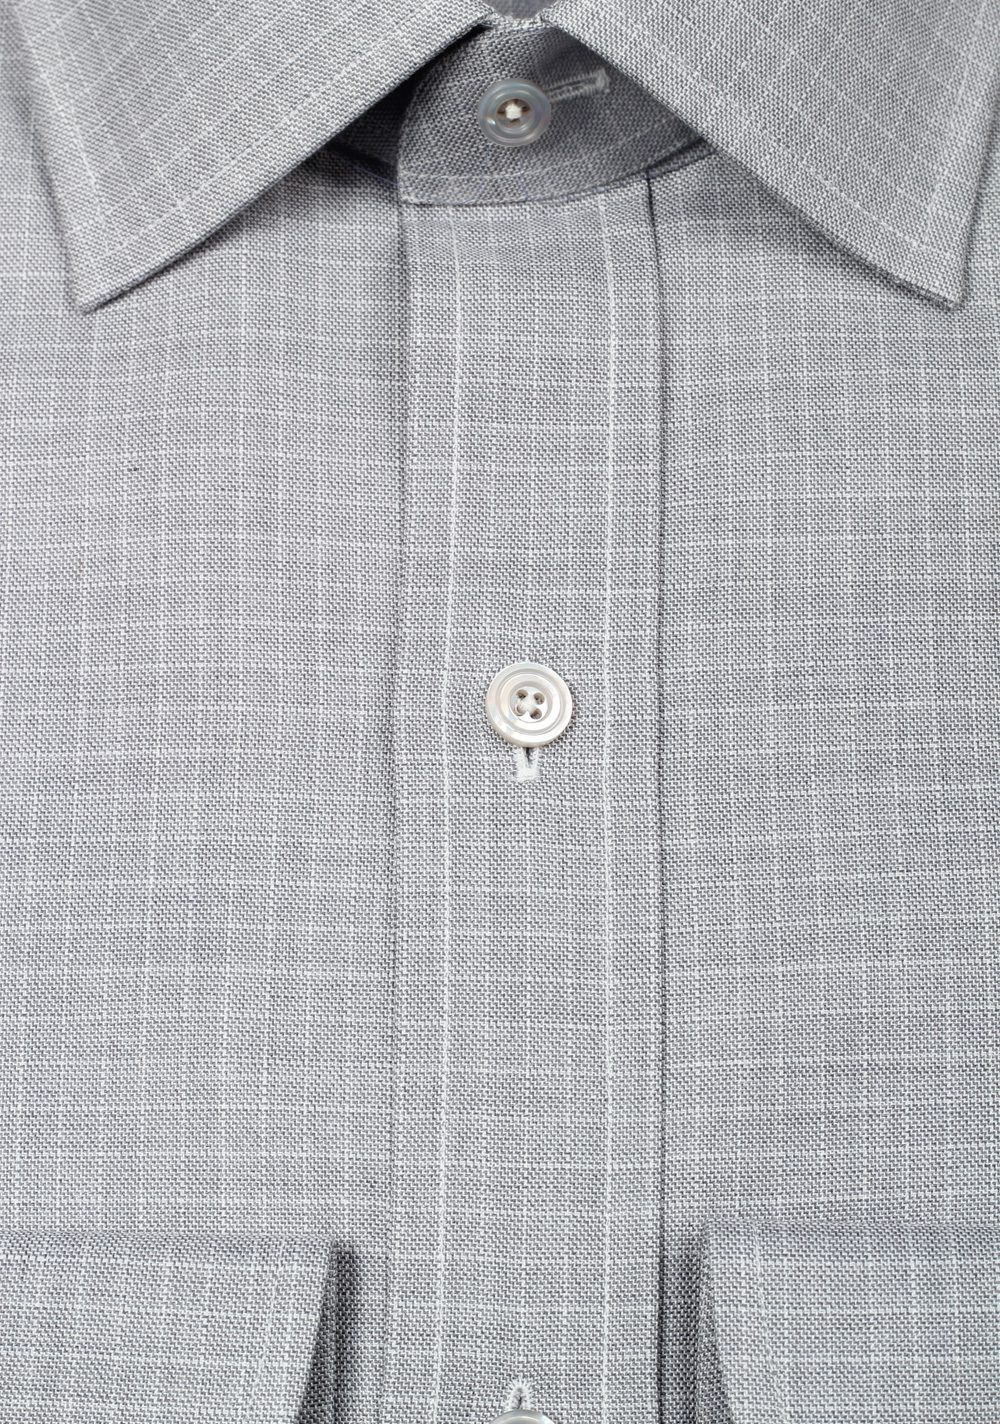 TOM FORD Patterned Gray Dress Shirt Size 43 / 17 U.S. | Costume Limité